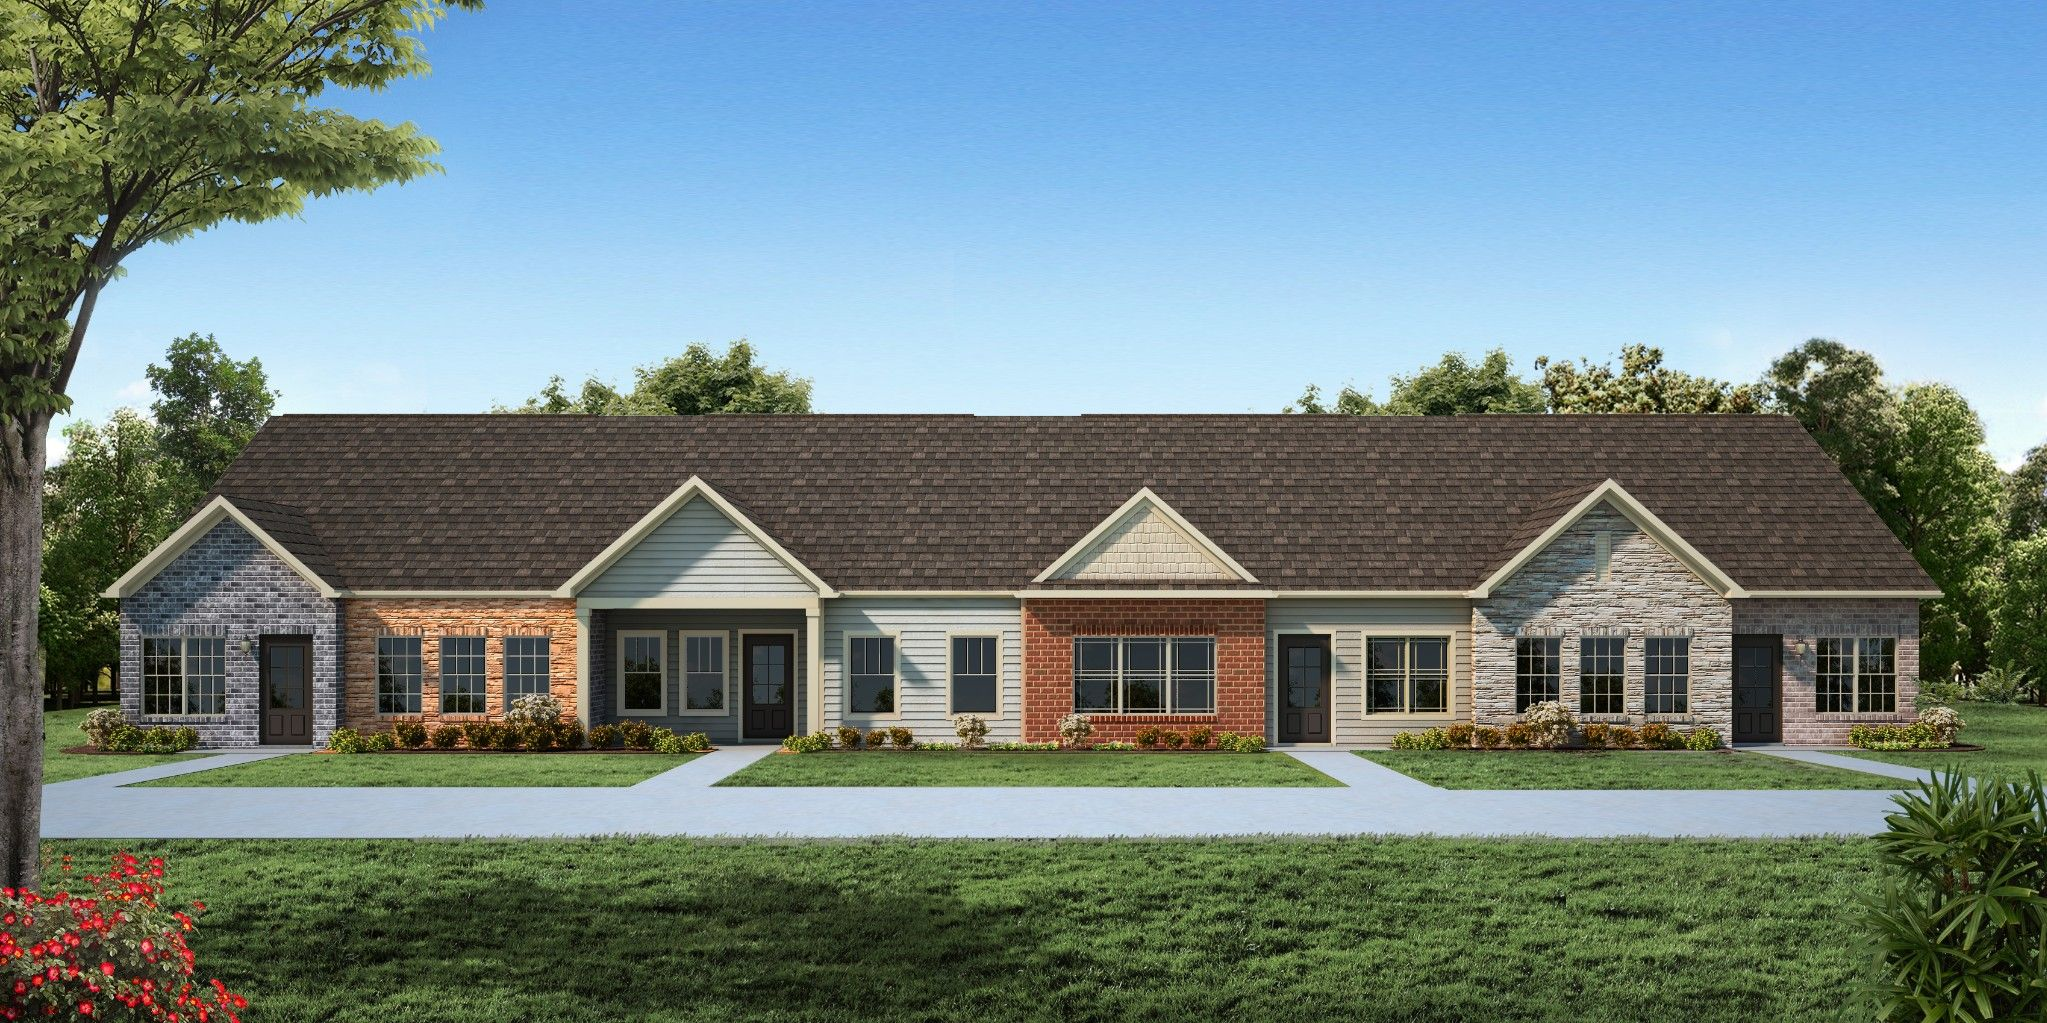 Exterior featured in The Ashleigh Courtyard Cottage By Goodall Homes in Chattanooga, GA